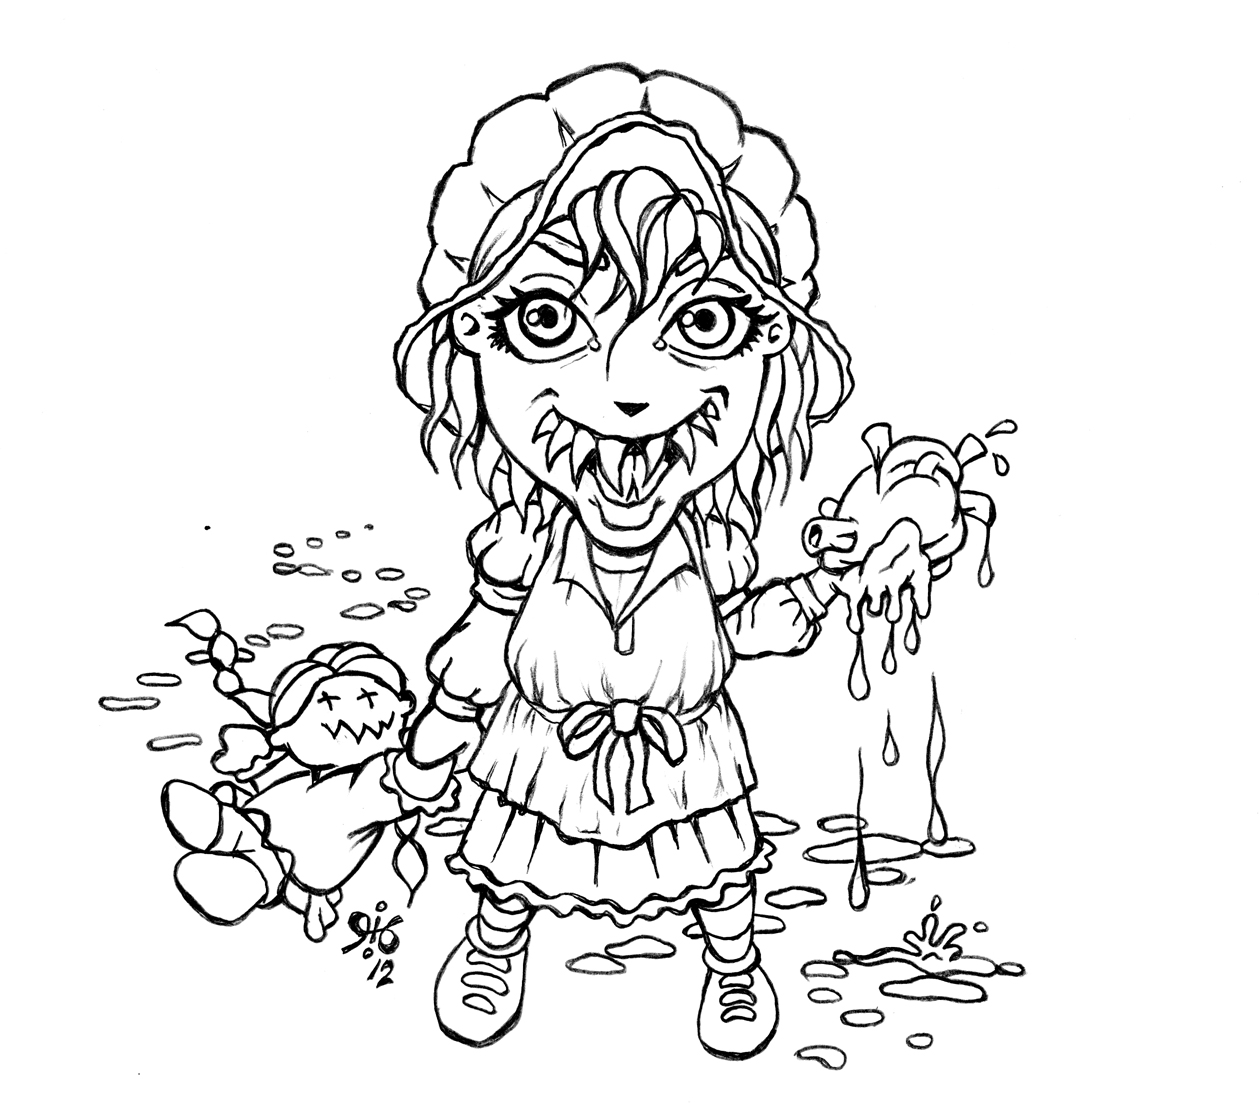 Little house onthe undead prairie by pinupsbygib on deviantart for Little house coloring pages